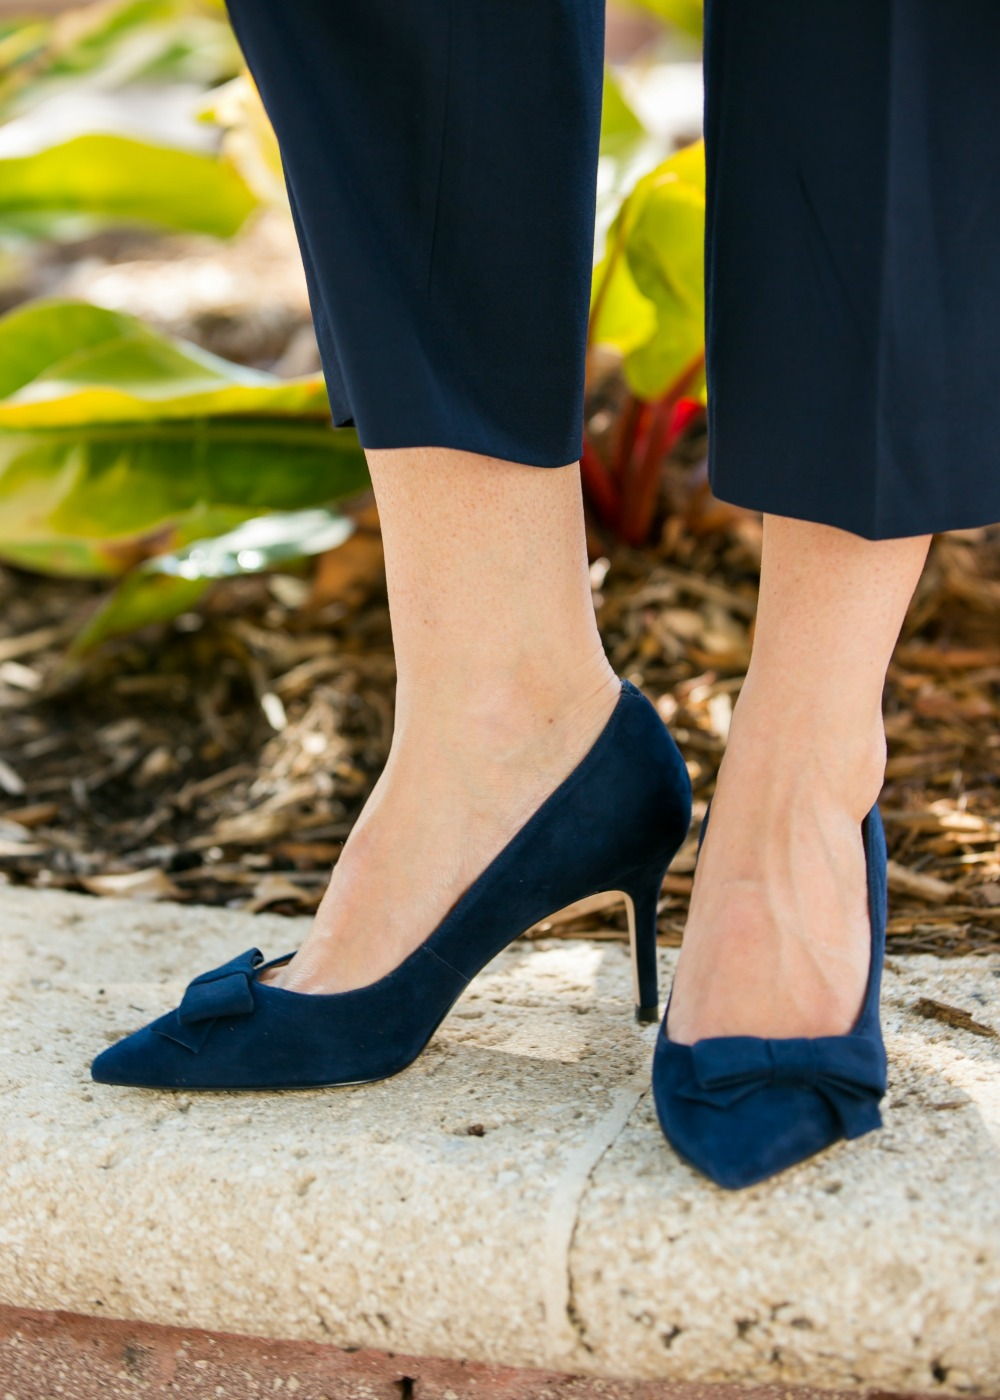 Bow heels // easy outfit combos to get ready fast for work